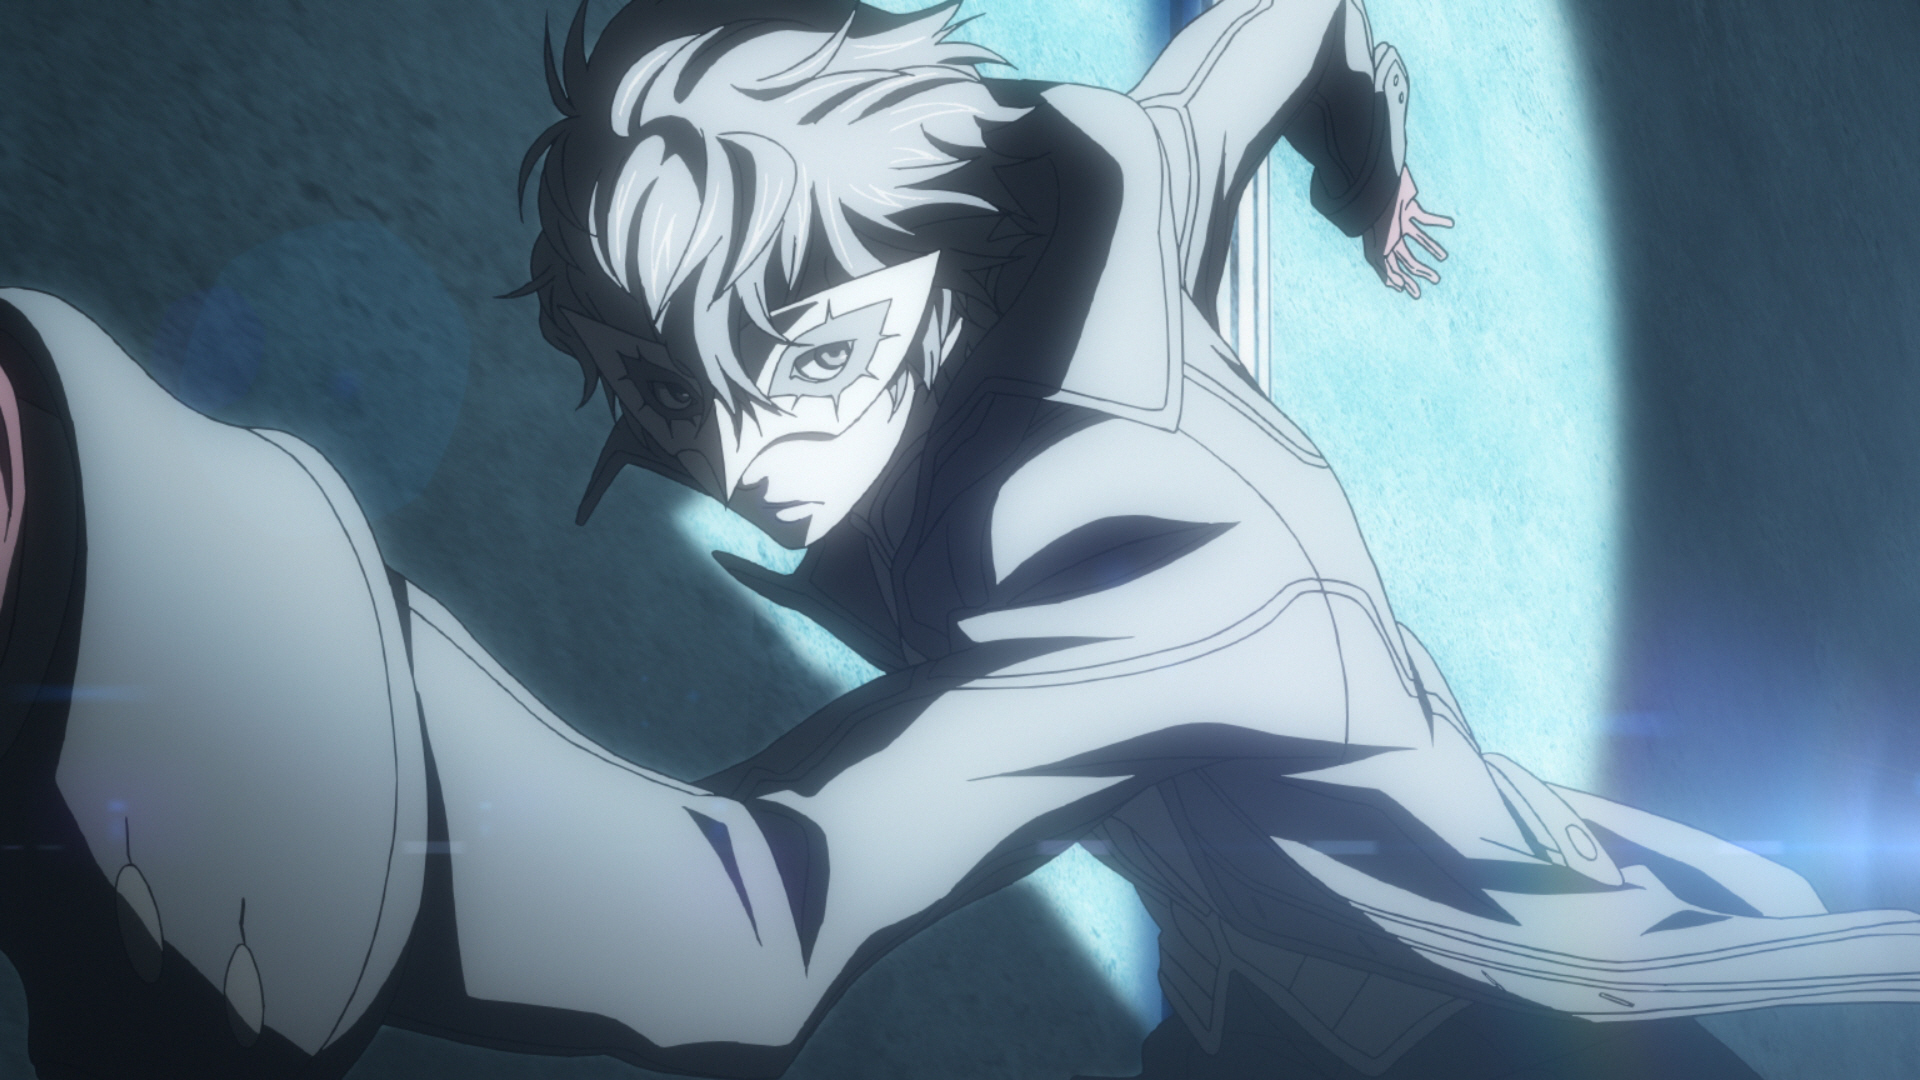 Persona 5 guide: 10 tips for your first 20 hours